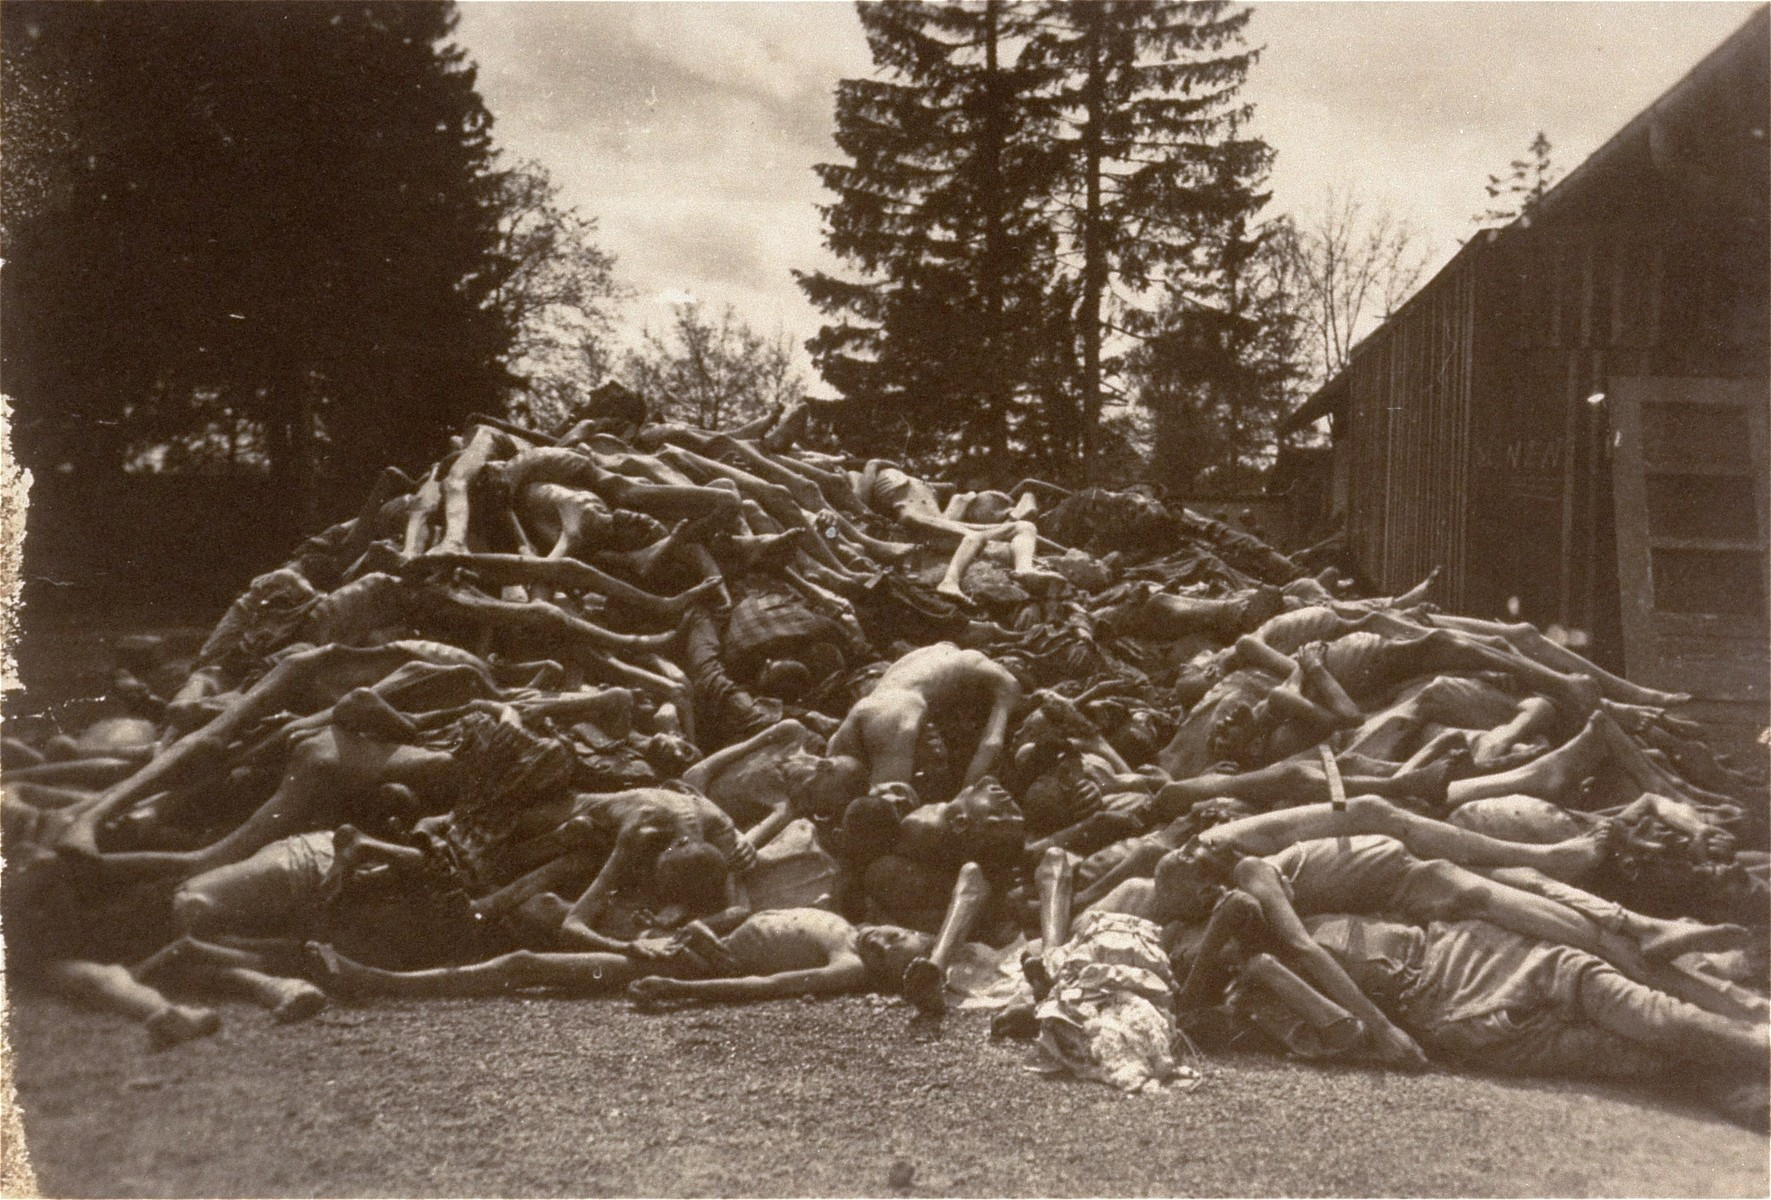 Corpses piled behind the crematorium.